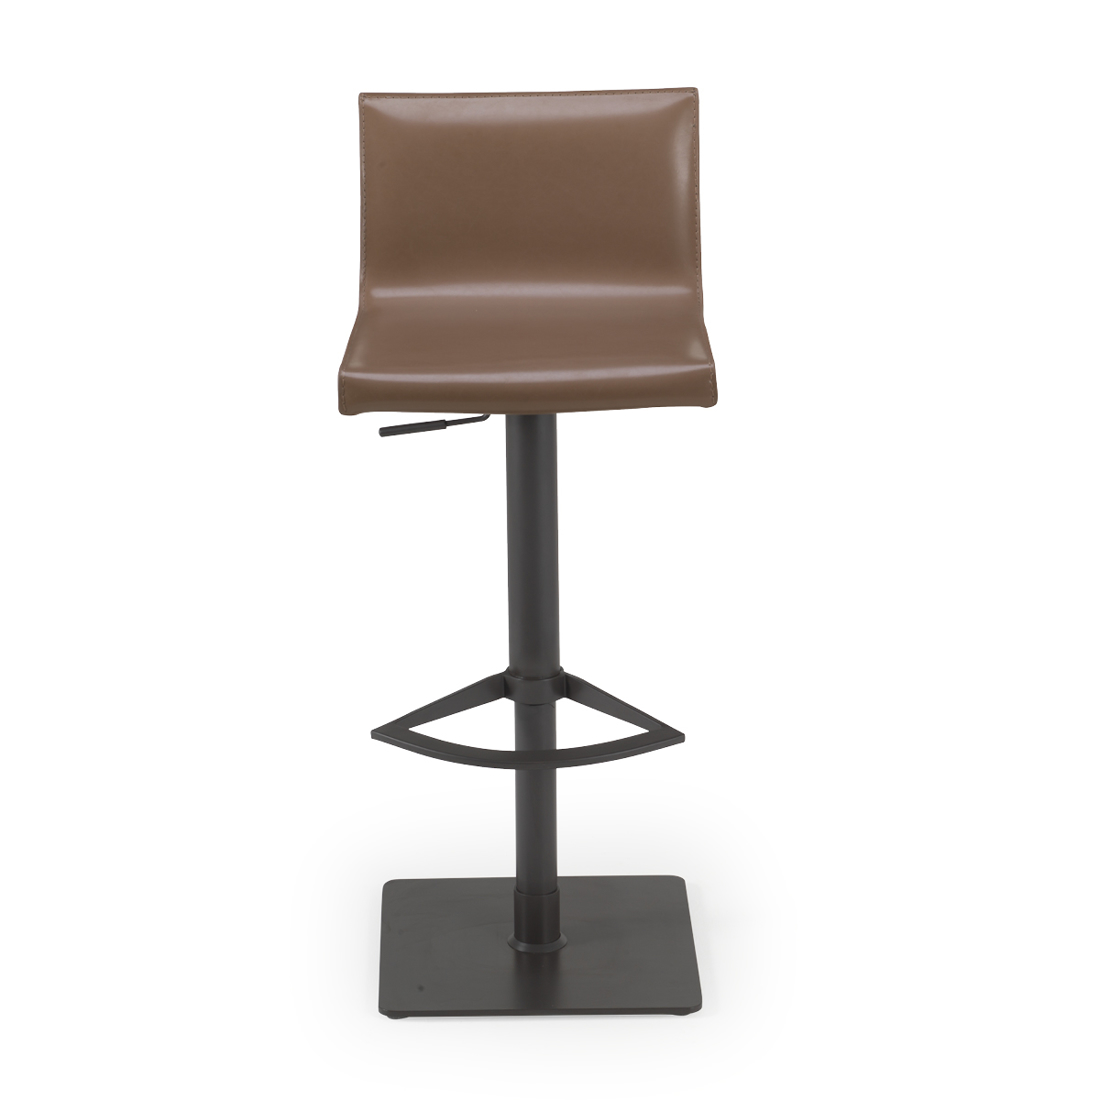 Picture of GINO HEIGHT ADJUSTABLE STOOL 42x47xh103 cm